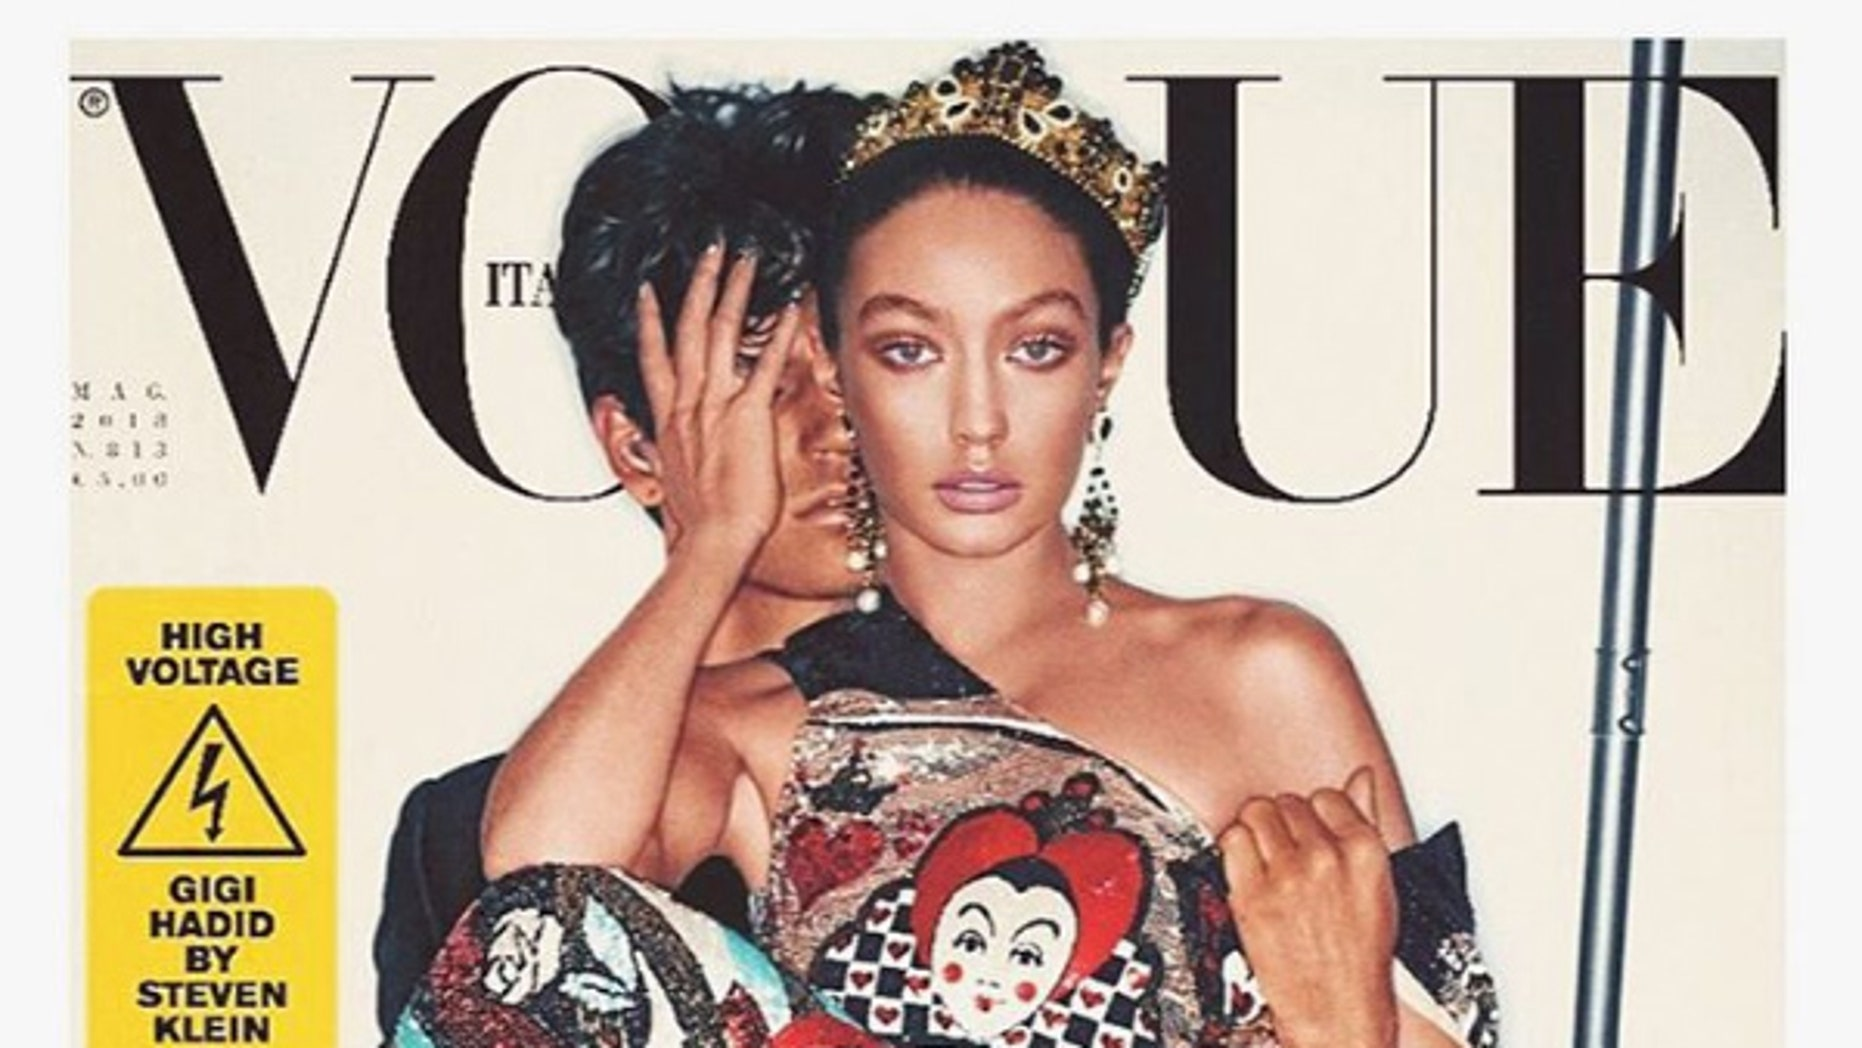 Gigi Hadid appears on the cover of Vogue Italia. Some are criticizing the magazine for seemingly darkening her skin.